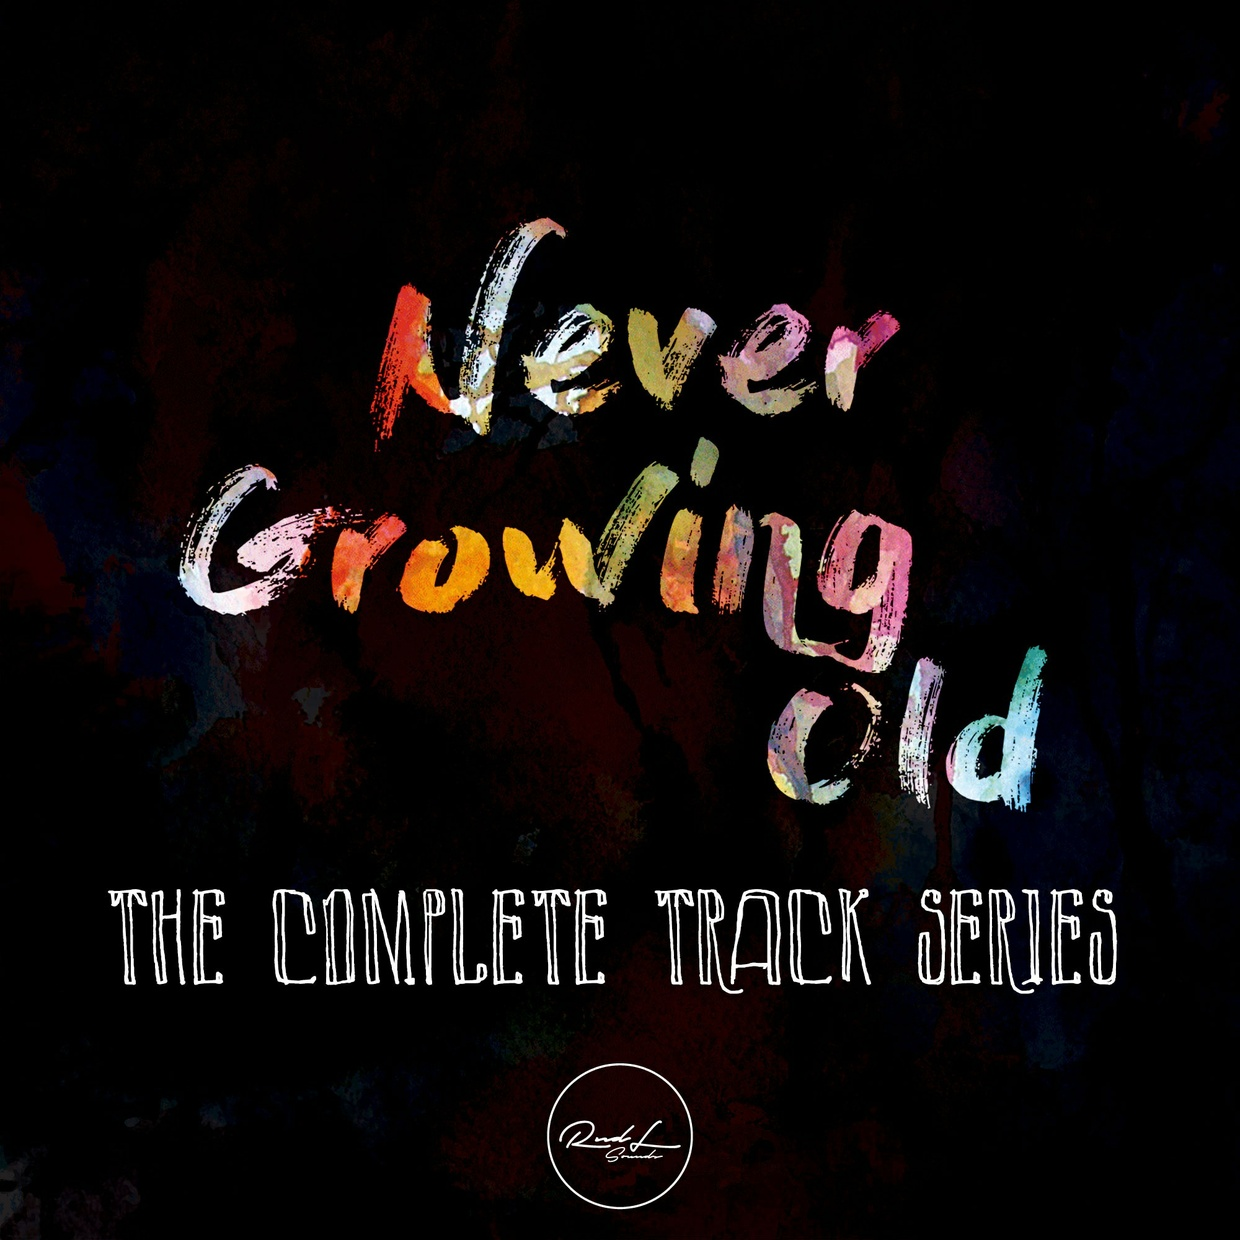 The Complete Track Series - Never Growing Old